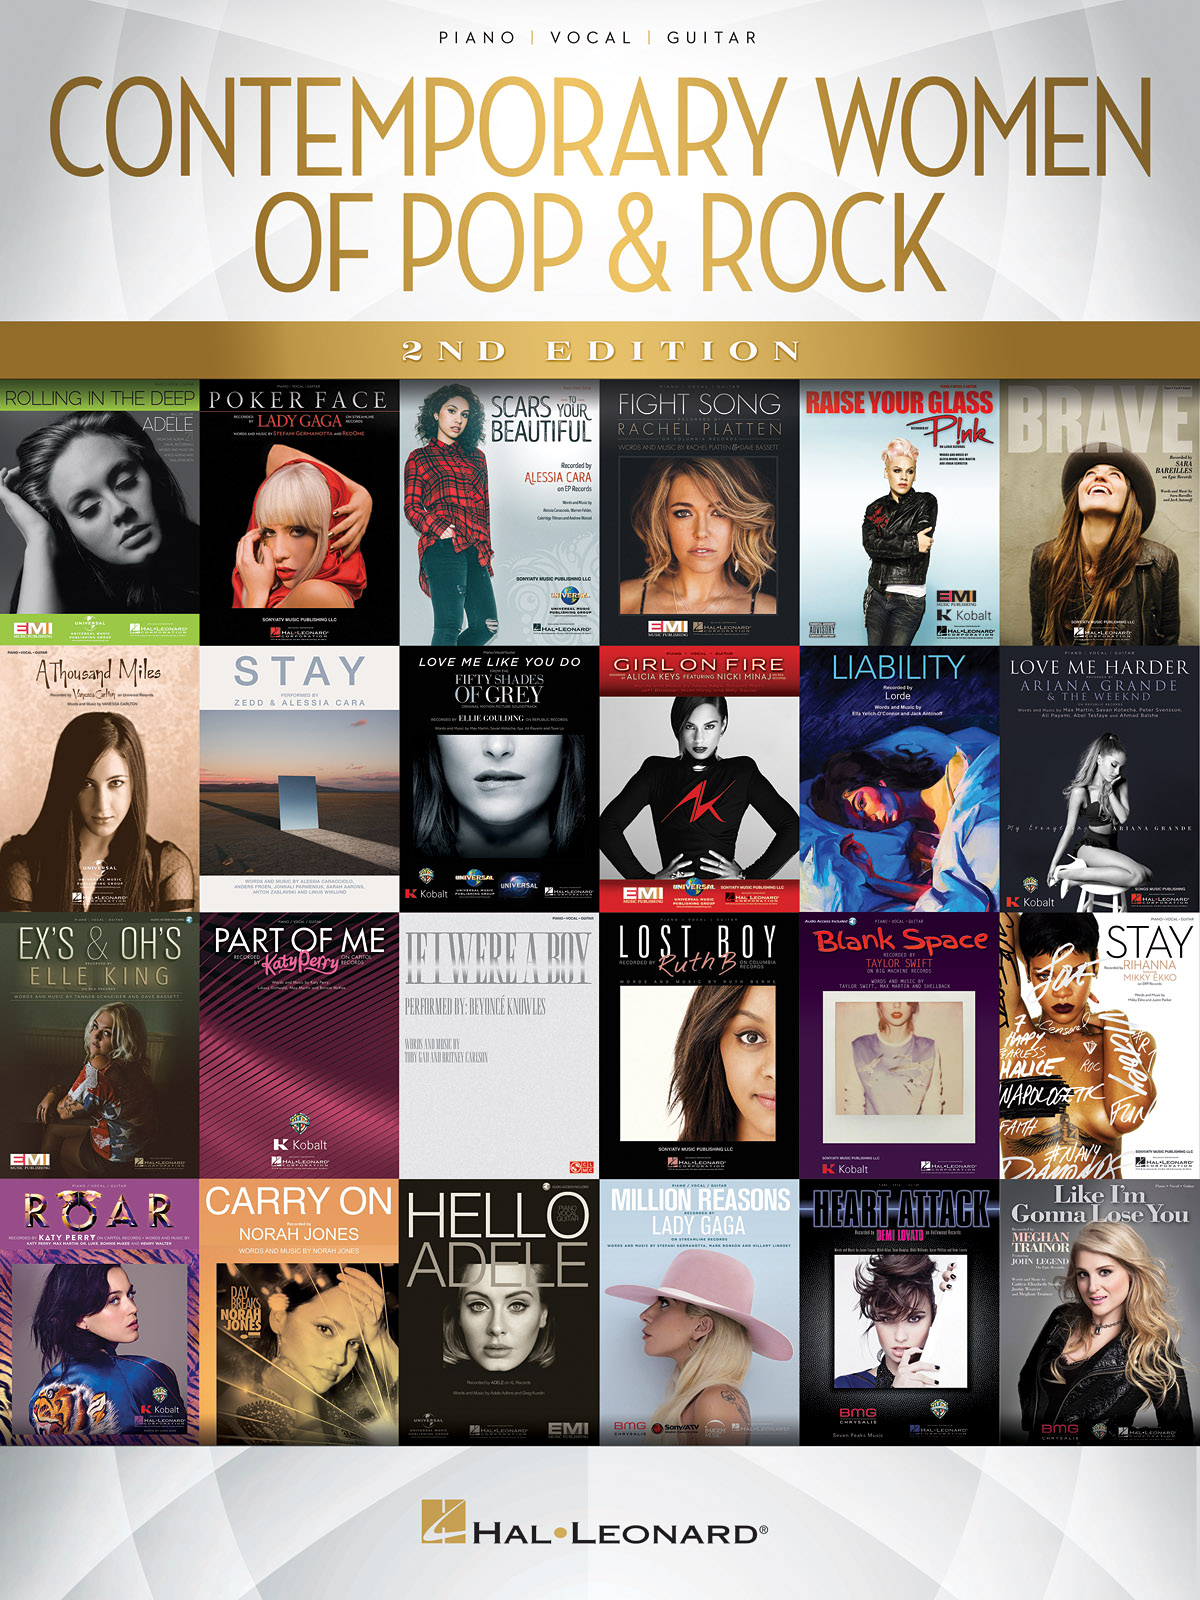 Contemporary Women of Pop & Rock - 2nd Edition: Piano  Vocal and Guitar: Mixed